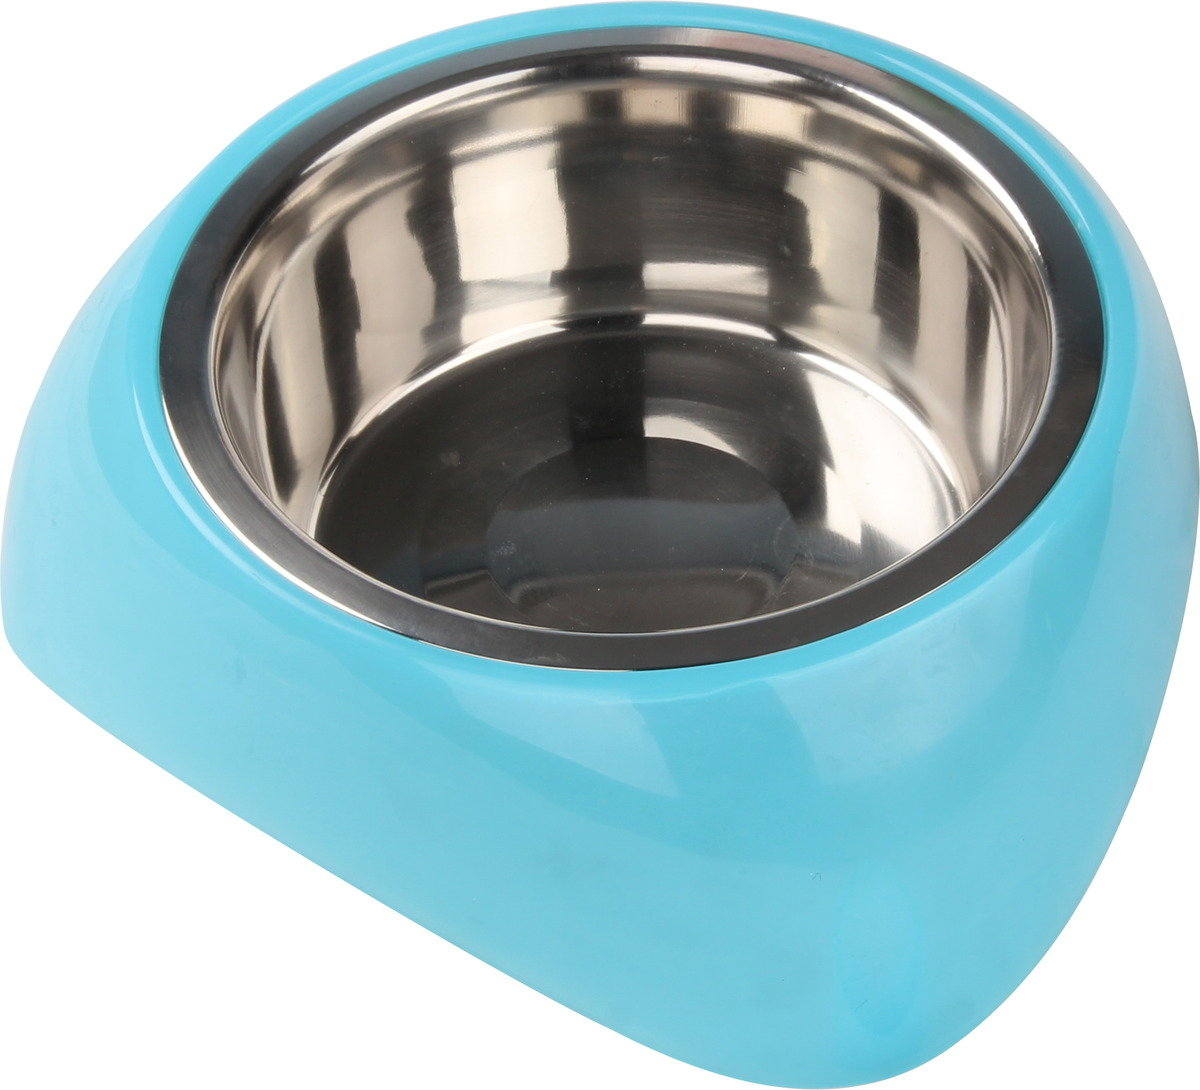 Stainless Steel Bowl (blue)